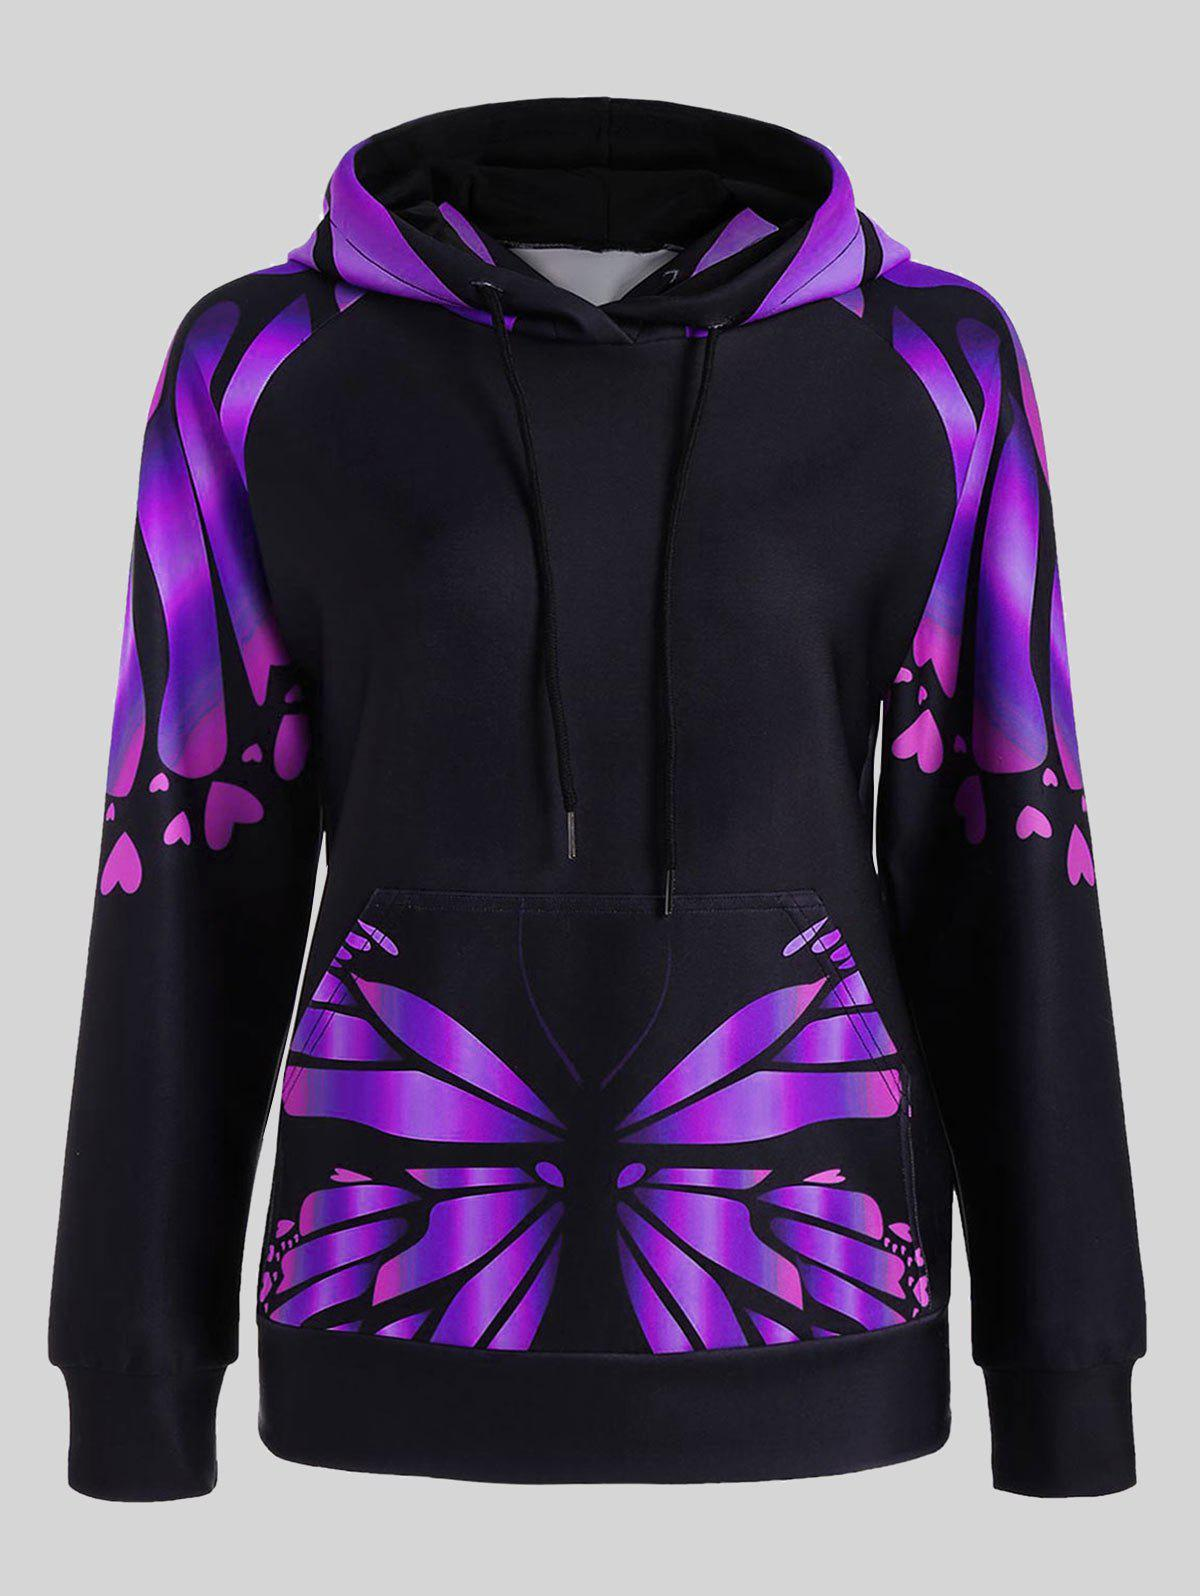 Plus Size Butterfly Print Kangaroo HoodieWOMEN<br><br>Size: 2XL; Color: PURPLE; Material: Polyester,Spandex; Shirt Length: Regular; Sleeve Length: Full; Style: Fashion; Pattern Style: Insect,Print; Elasticity: Elastic; Season: Fall,Spring; Weight: 0.5000kg; Package Contents: 1 x Hoodie;